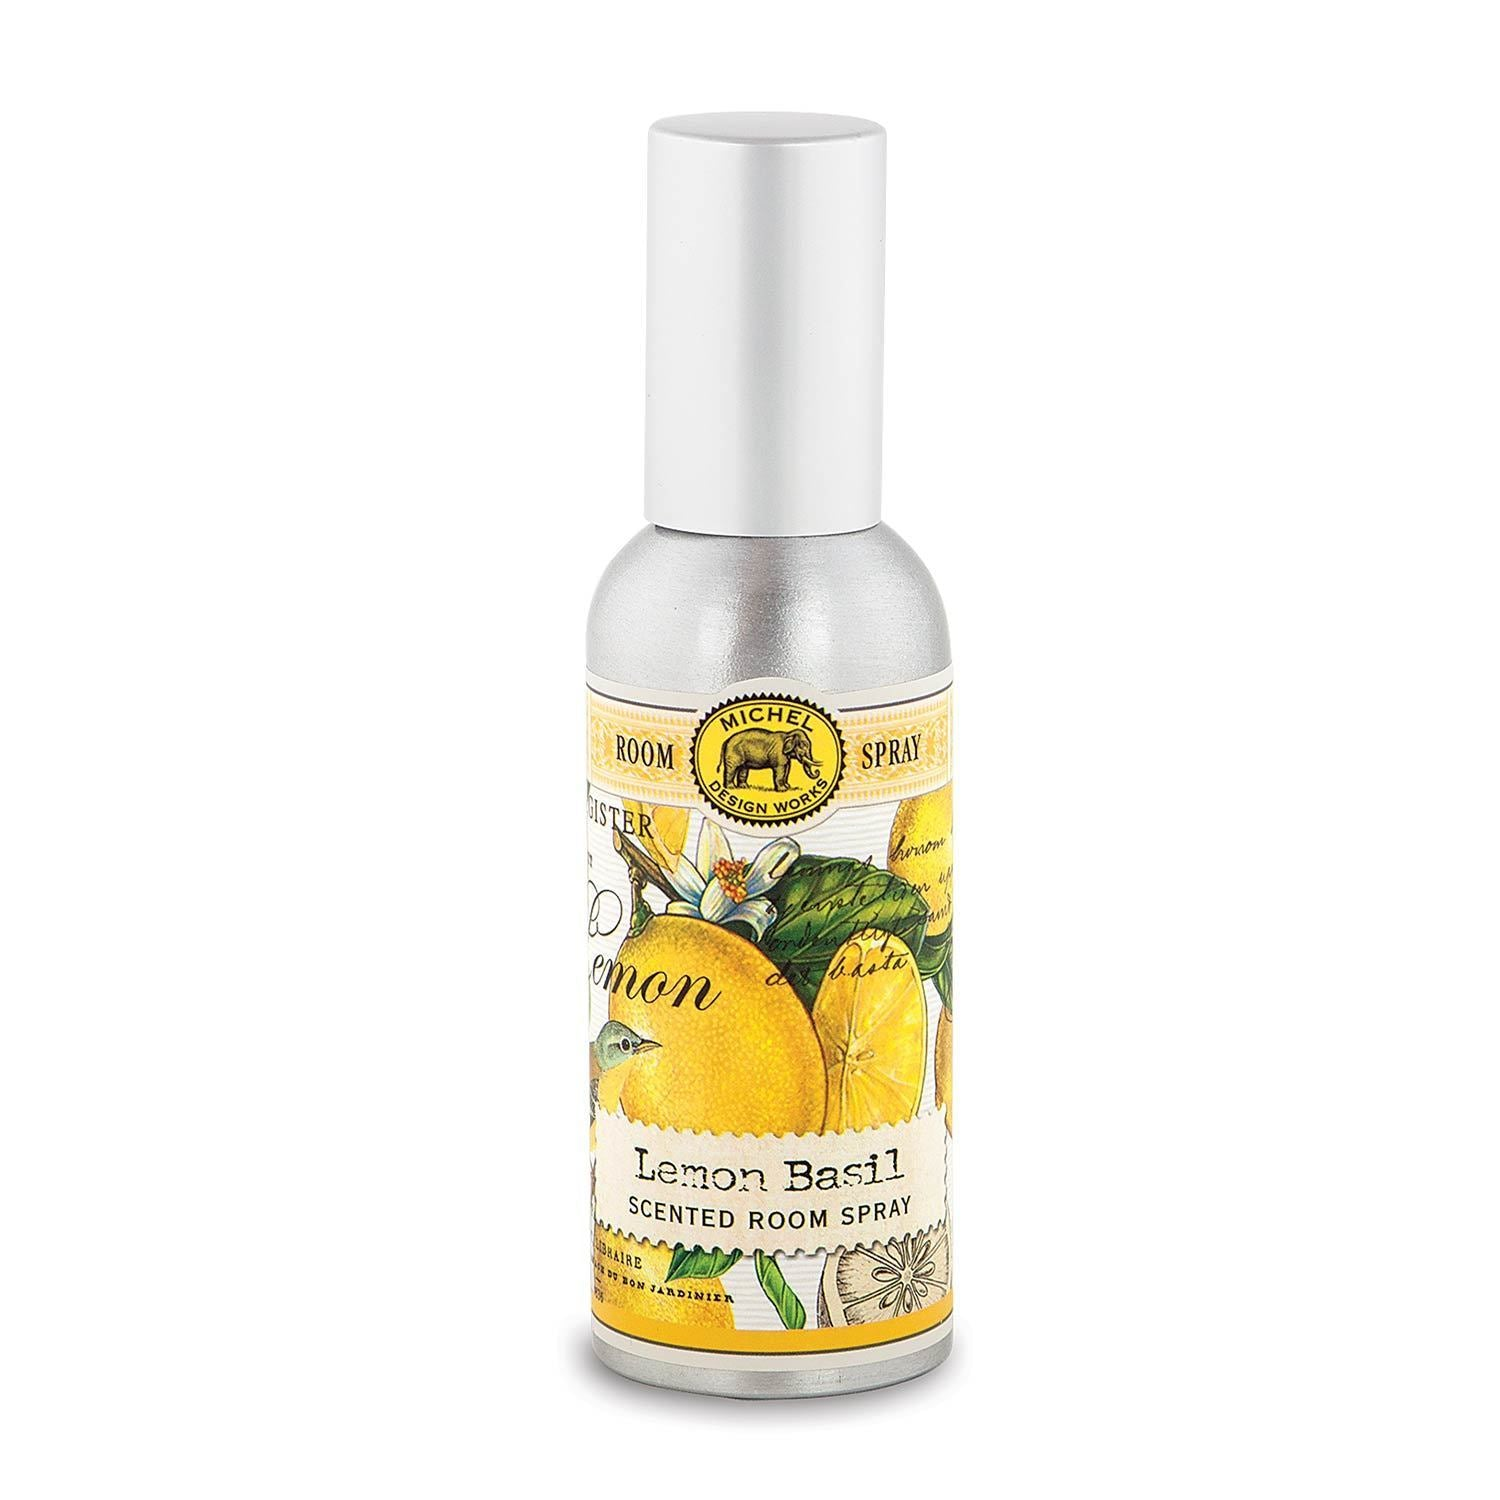 Lemon Basil Room Spray